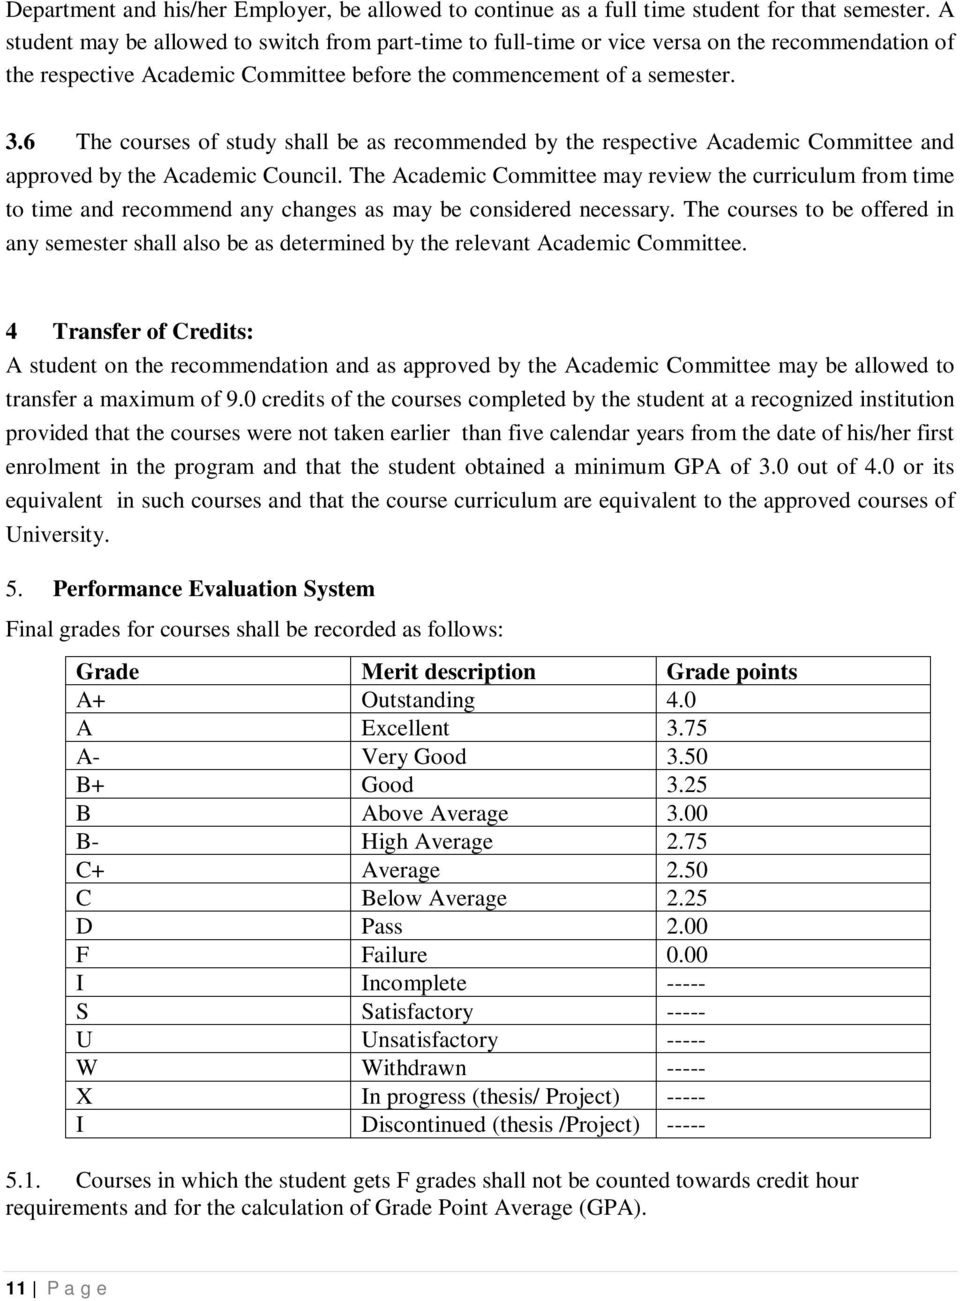 6 The courses of study shall be as recommended by the respective Academic Committee and approved by the Academic Council.